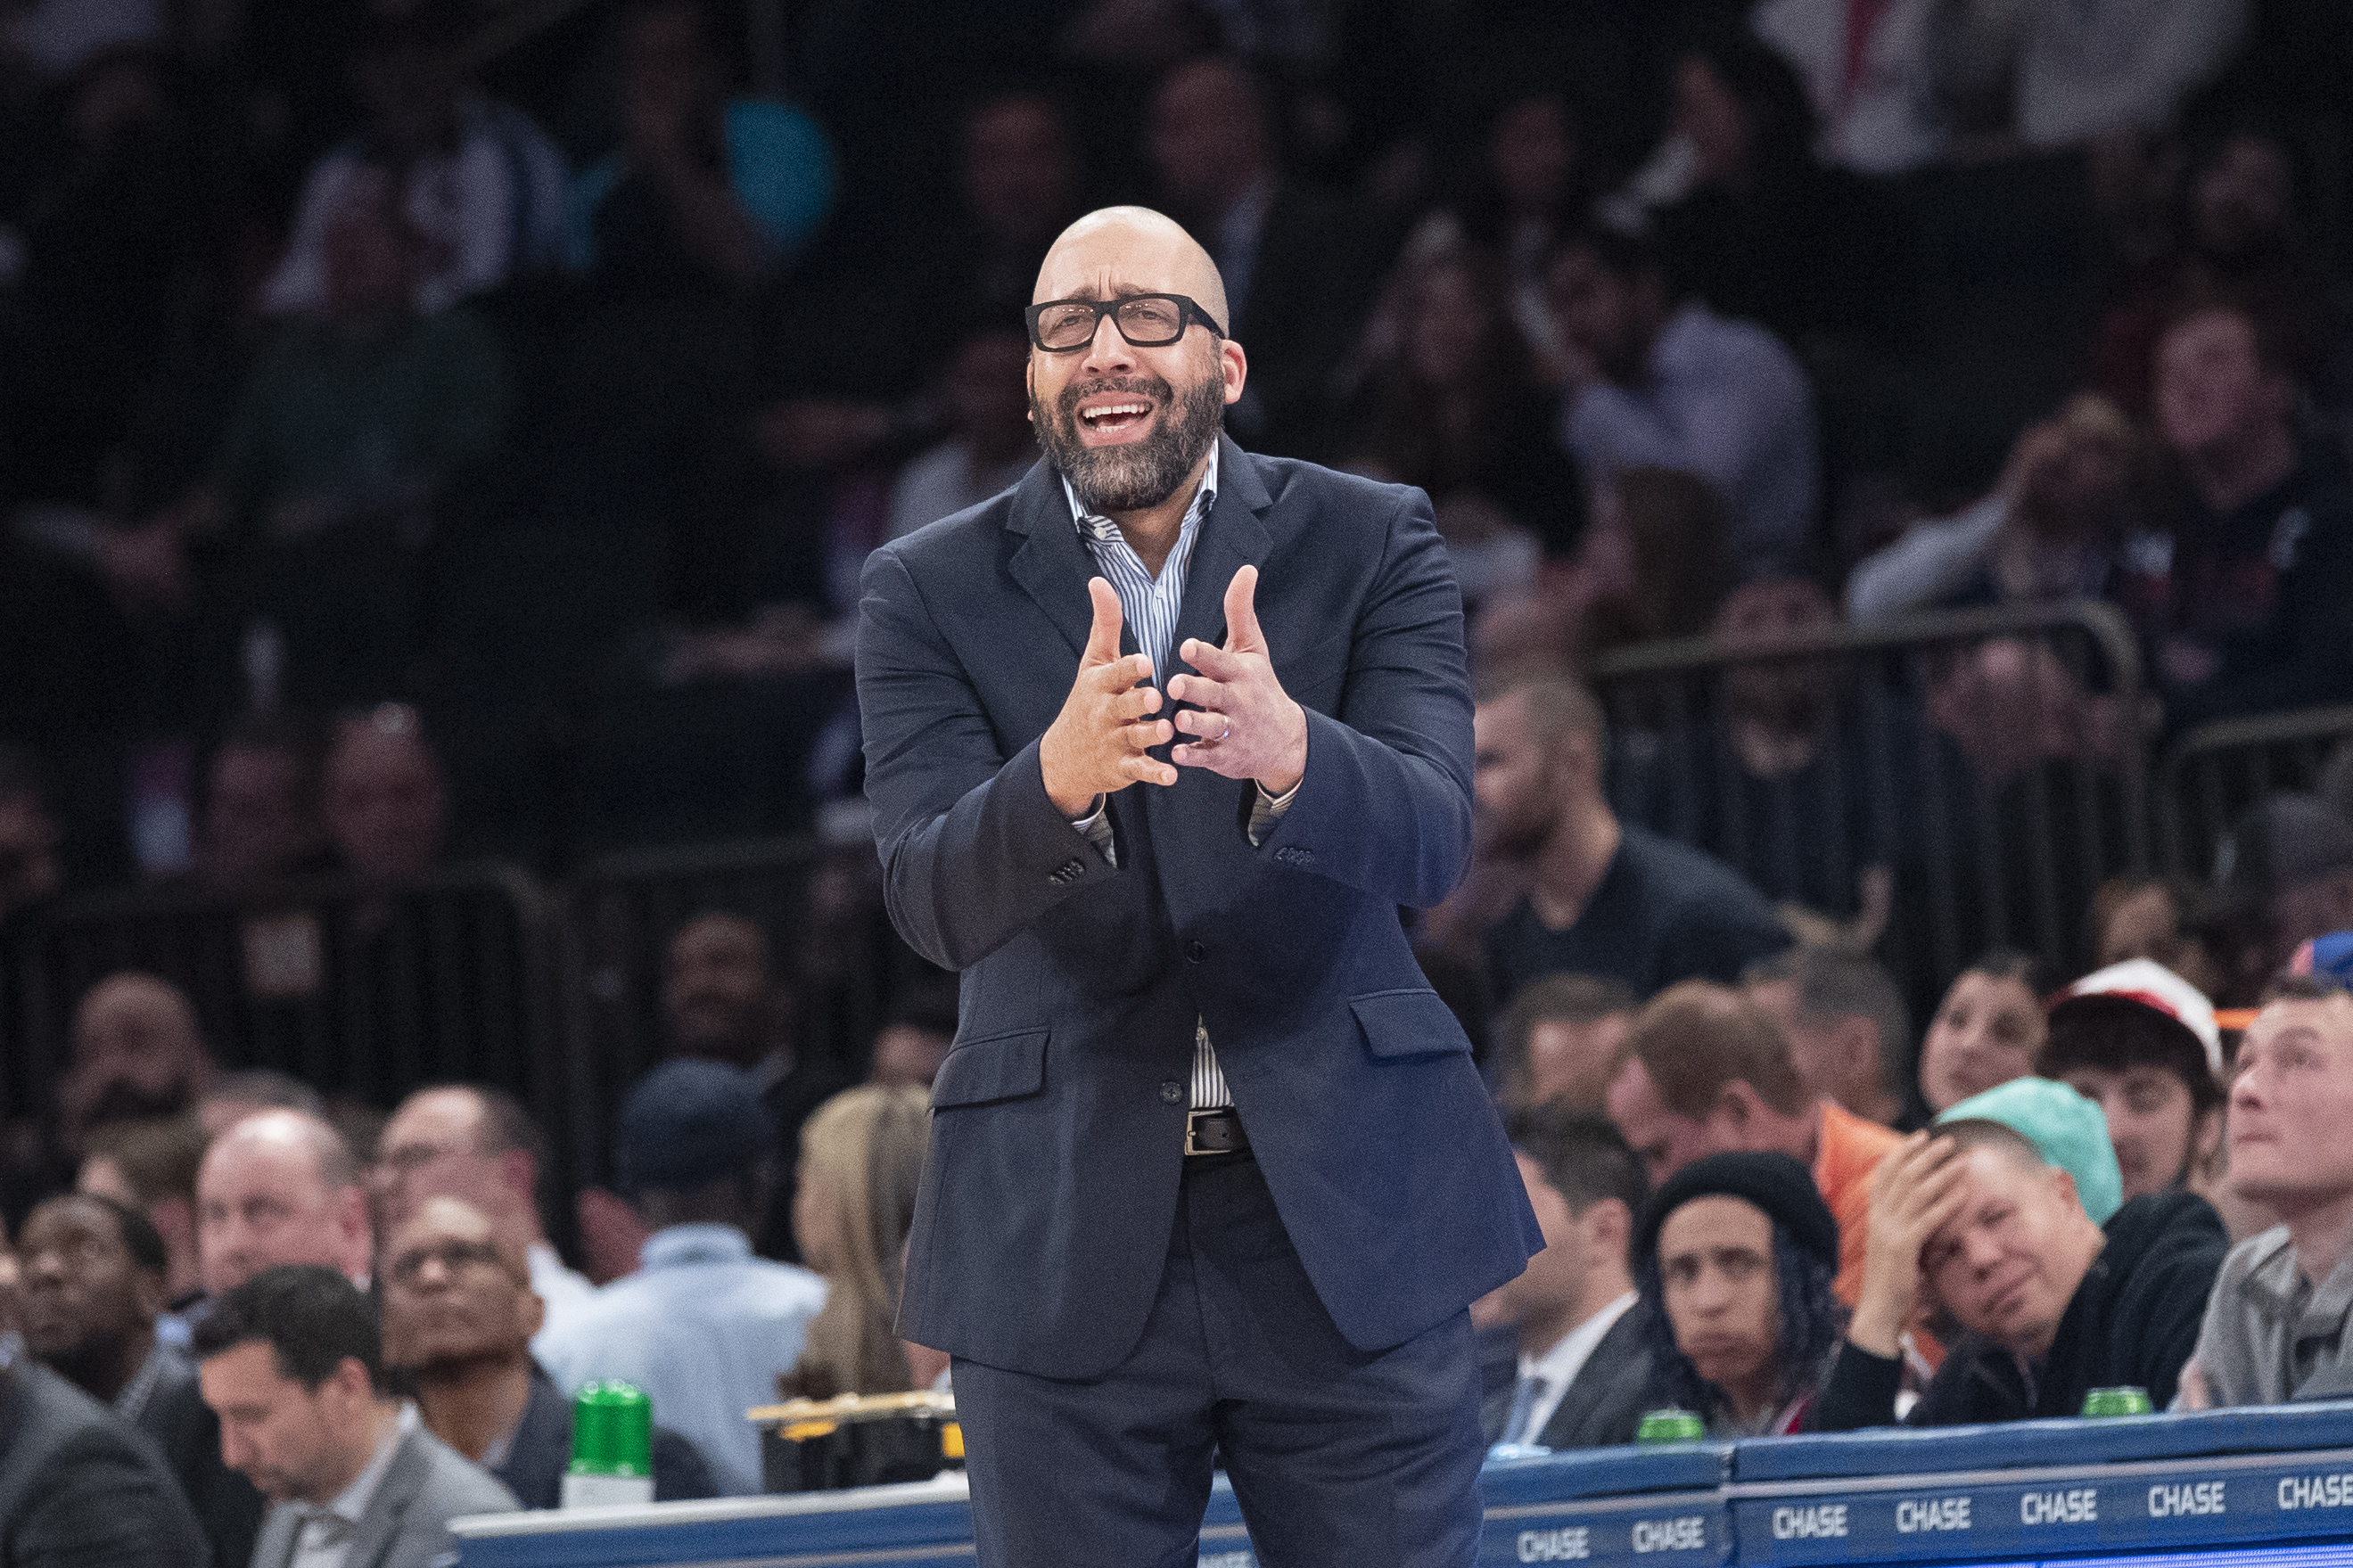 The Knicks fired coach David Fitzdale after the team's 4-18 start.